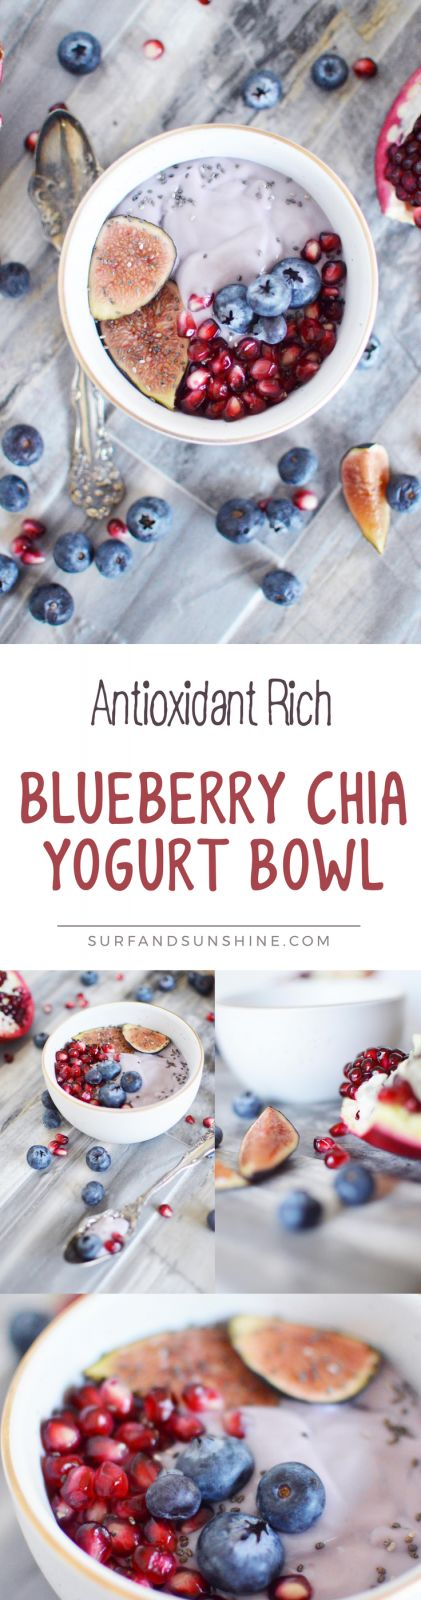 This delicious flavor packed Blueberry Chia yogurt bowl is one of my favorite antioxidant rich recipes, is family friendly and perfect for breakfast or a healthy snack! AD via @Jeanabeena